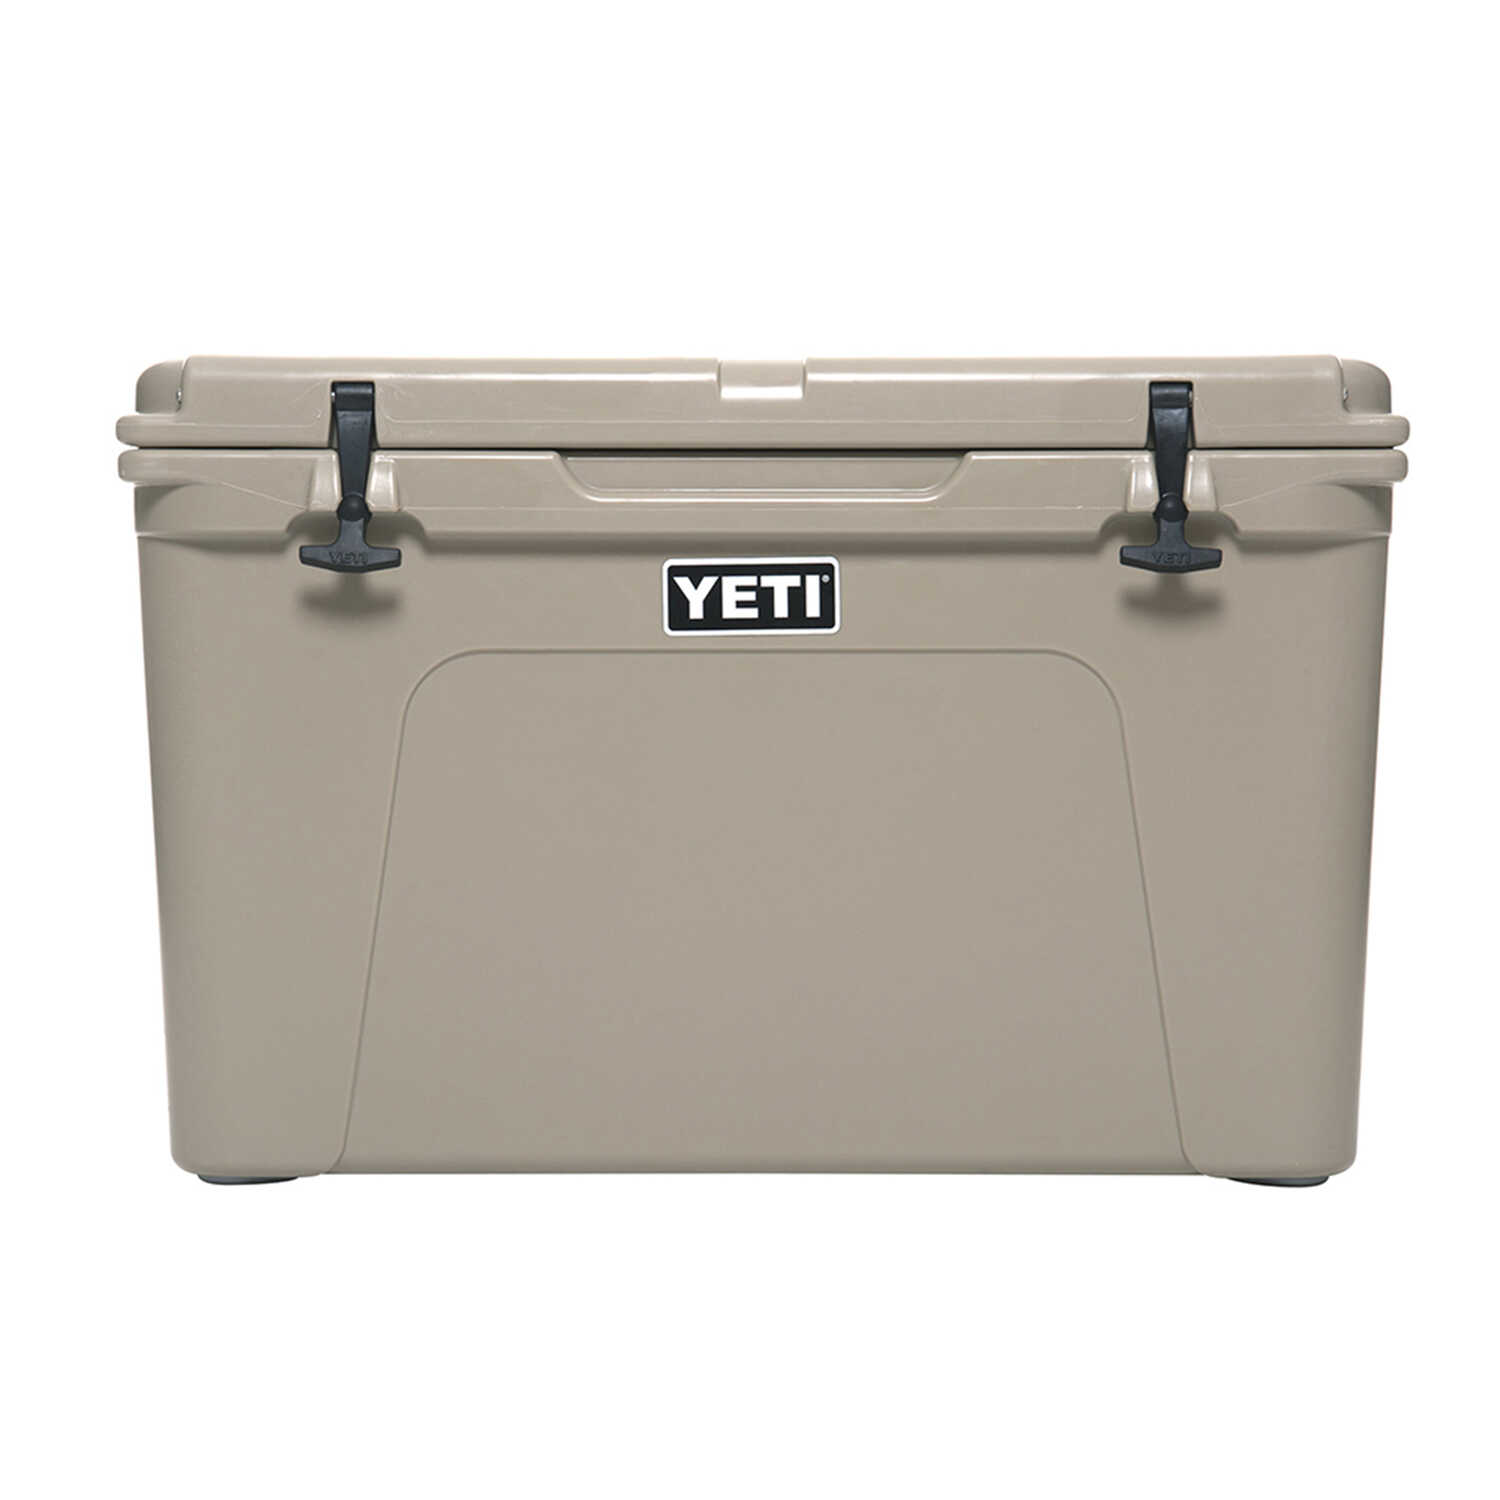 YETI  Tundra 105  Cooler  59 can capacity Tan